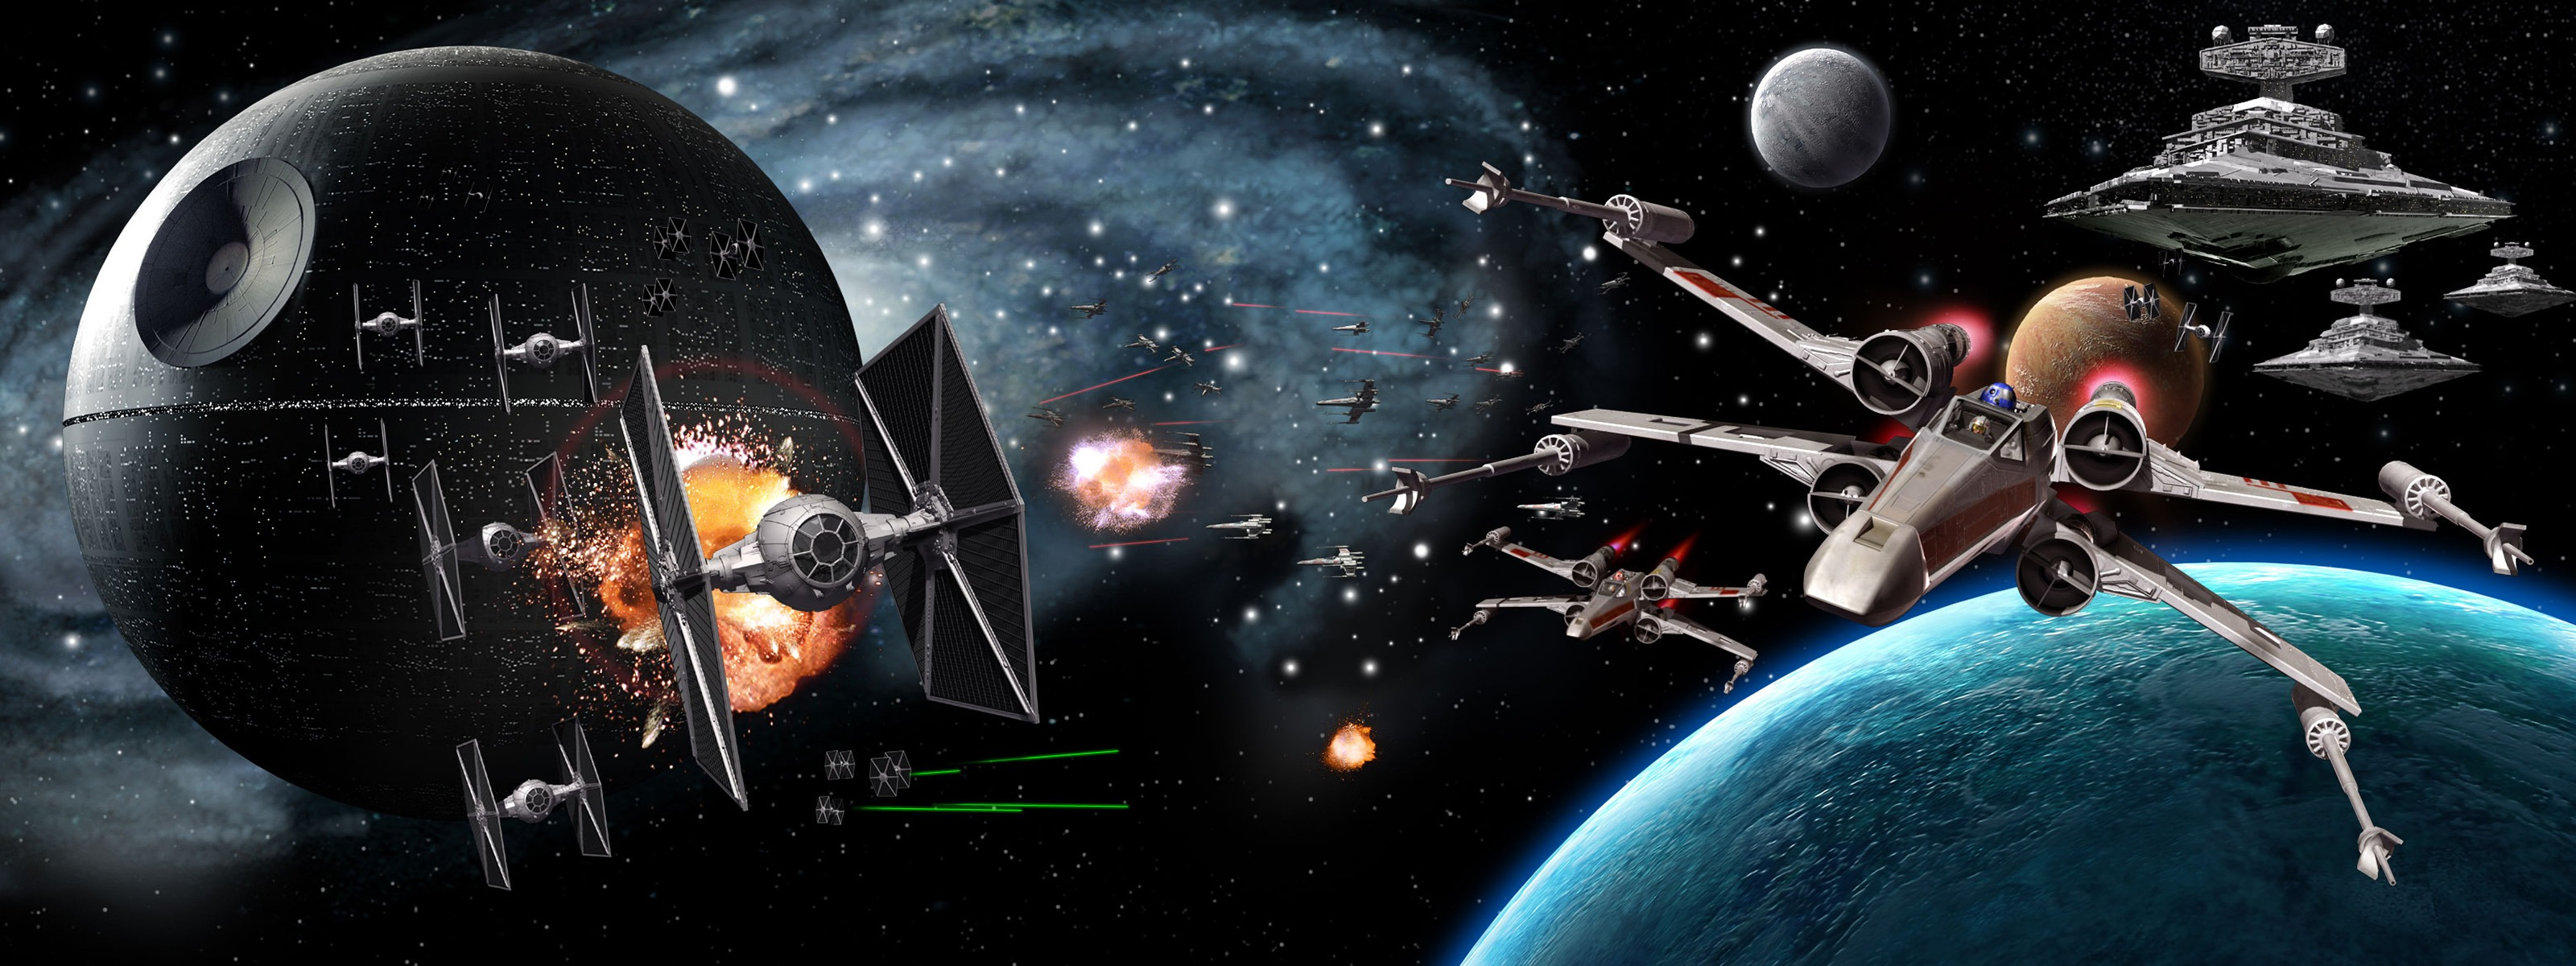 Dual Screen Game Wallpaper   Game Wallpapers for Dual Monitor 3200 3200x1200